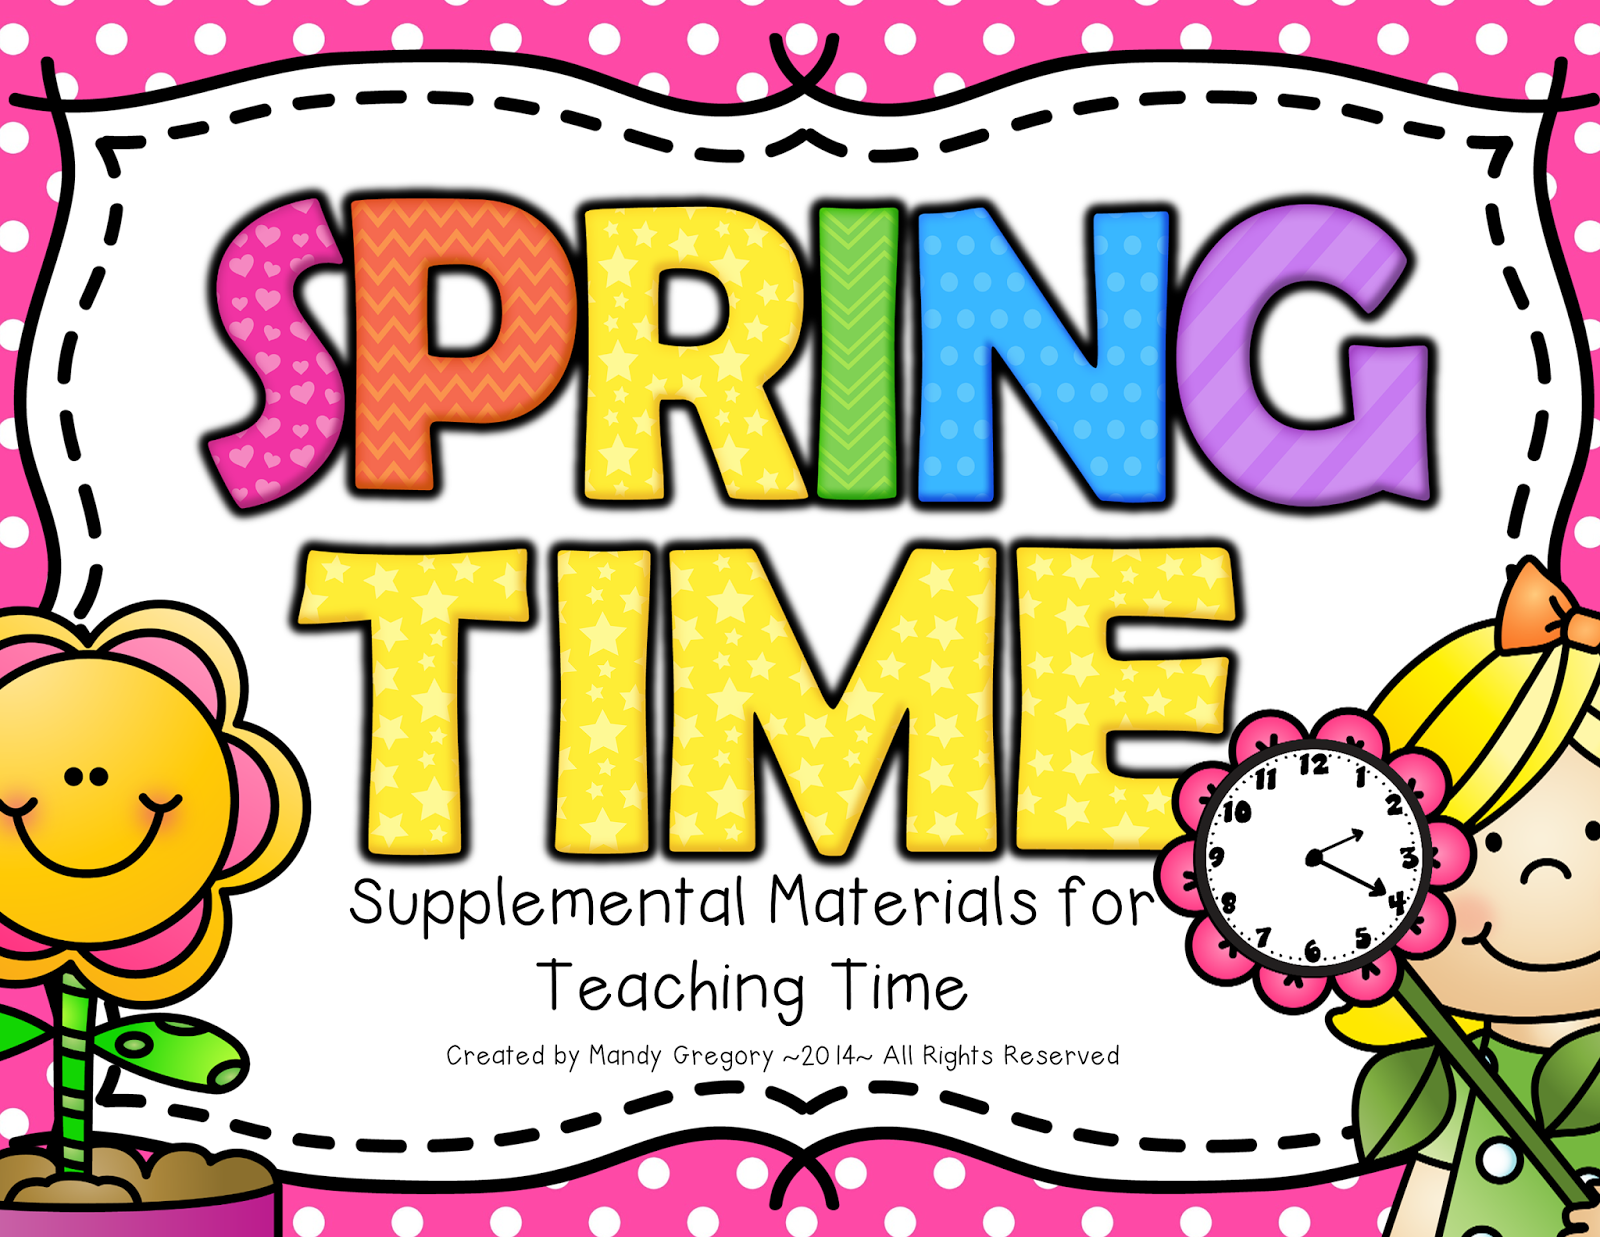 https://www.teacherspayteachers.com/Product/Spring-Time-Supplemental-Materials-for-Teaching-Time-1188352